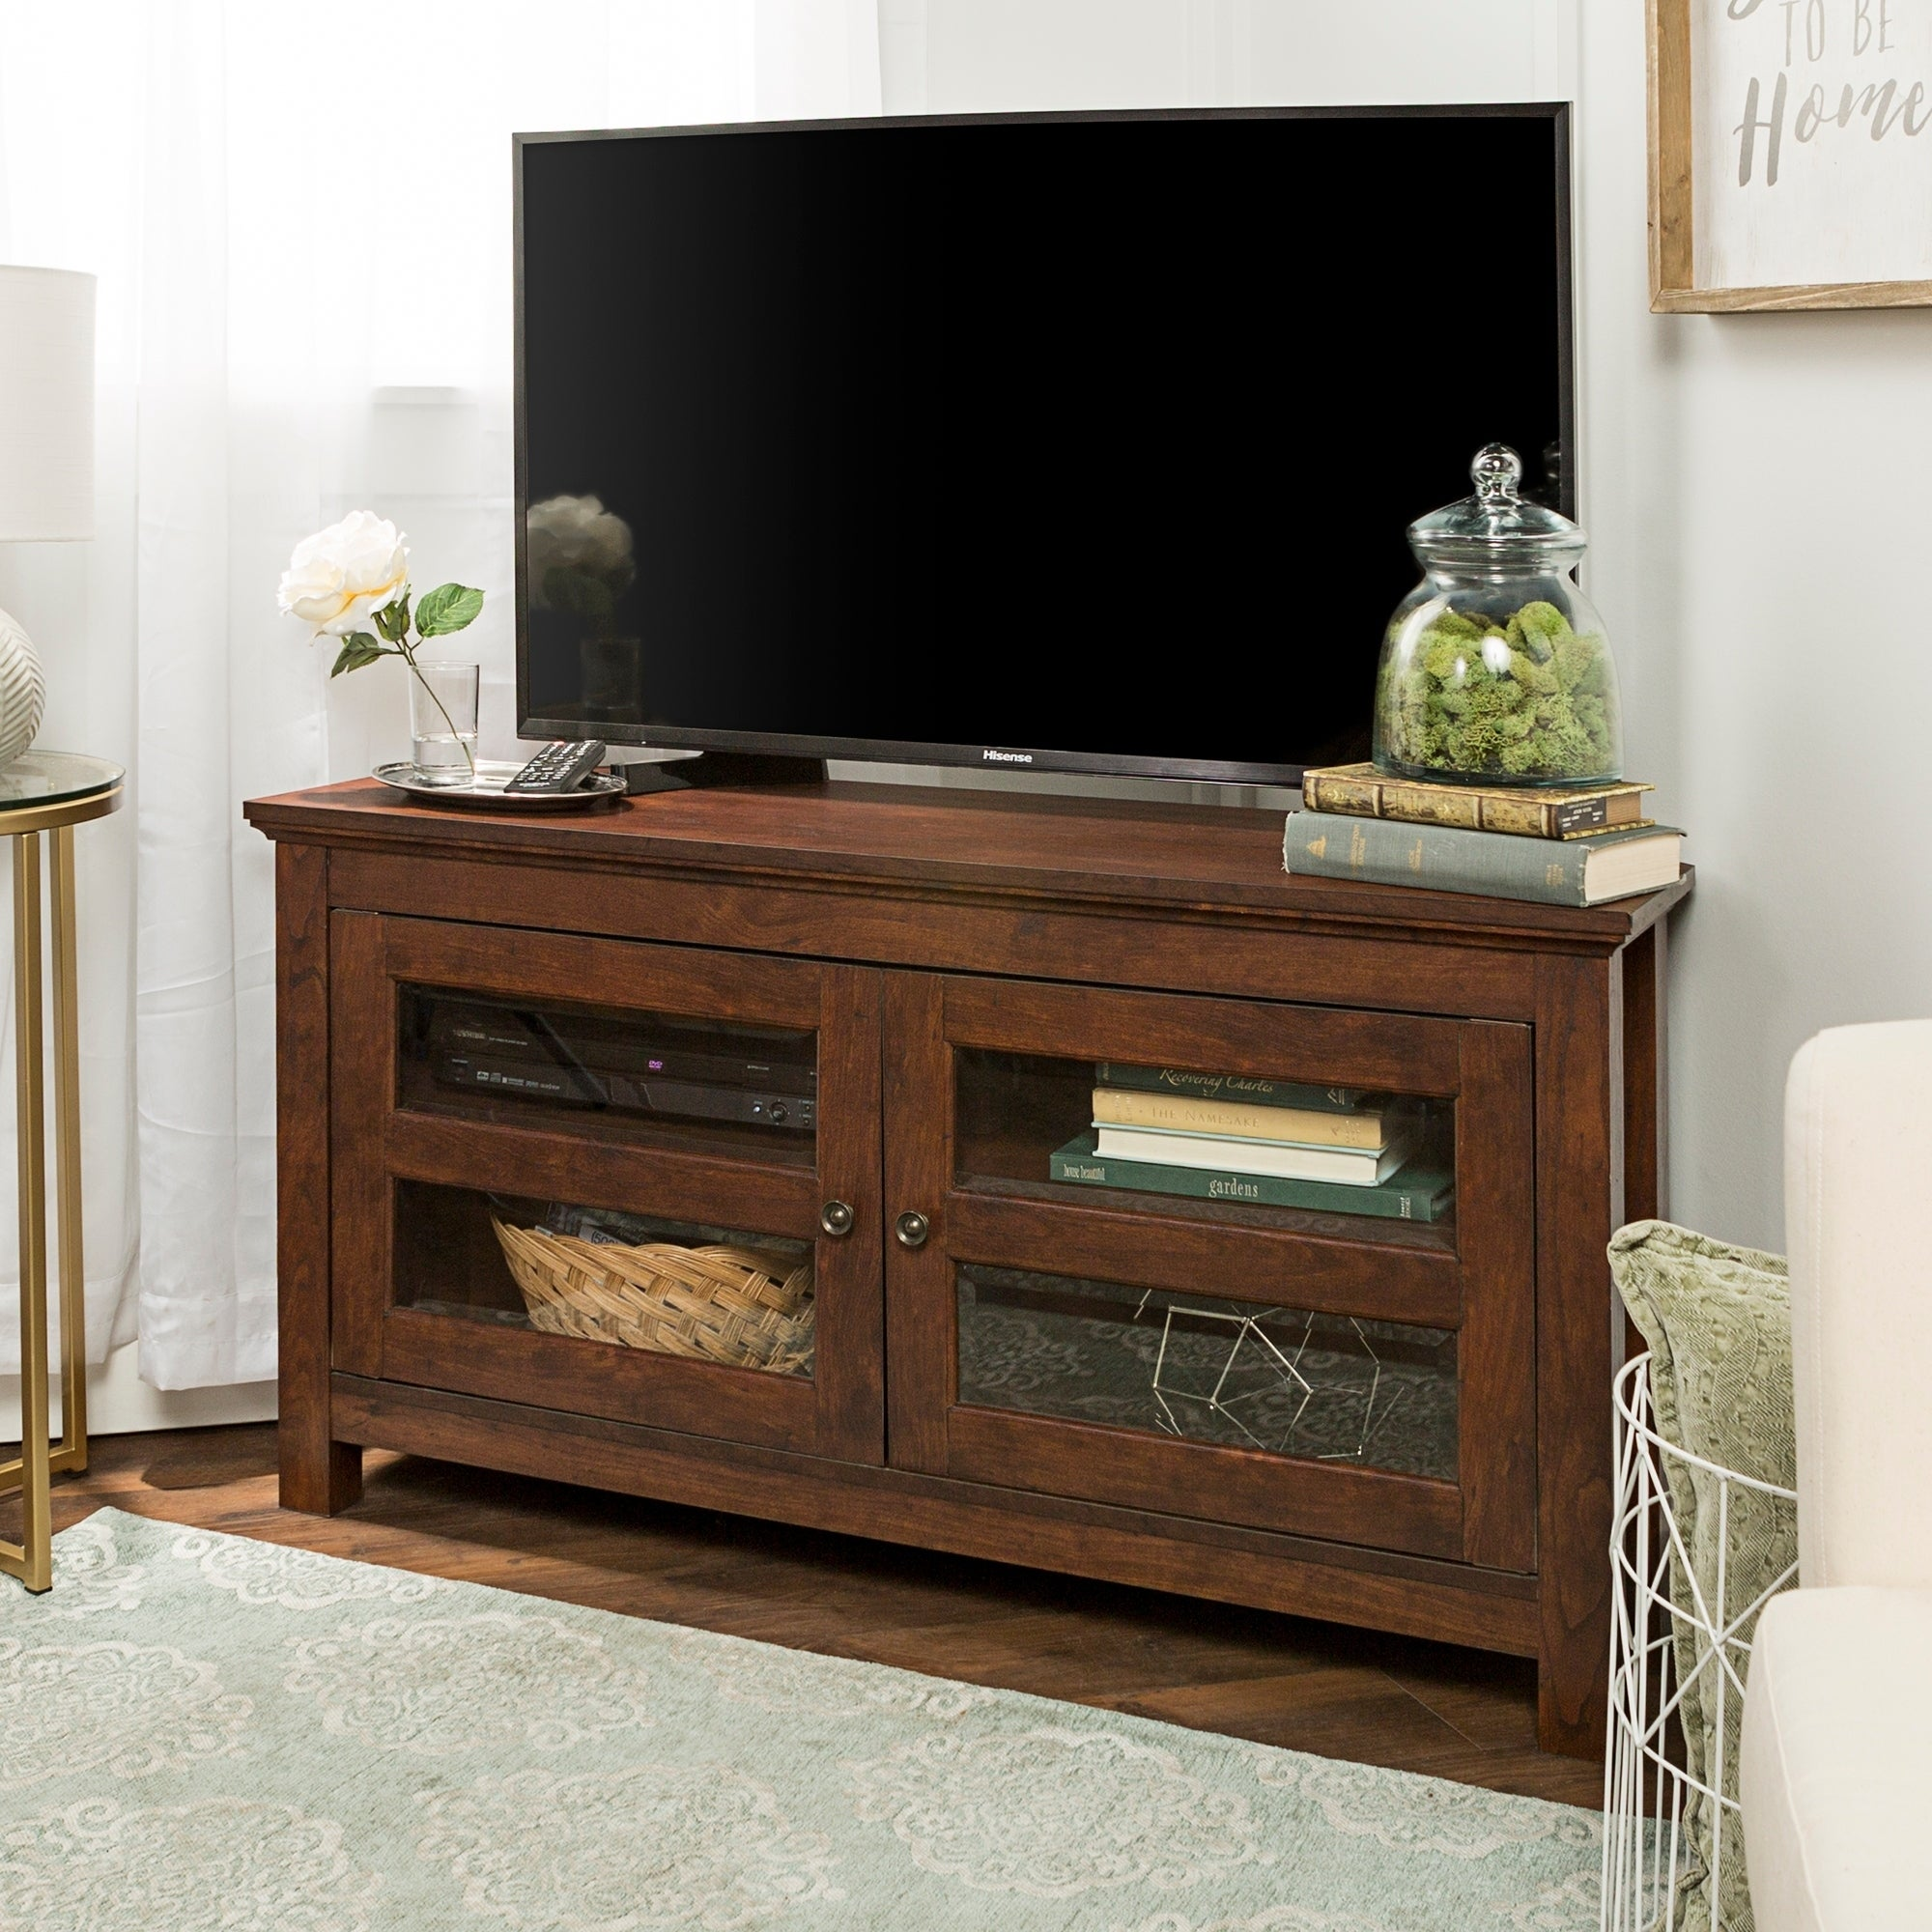 44 Inch Brown Wood Corner TV Stand